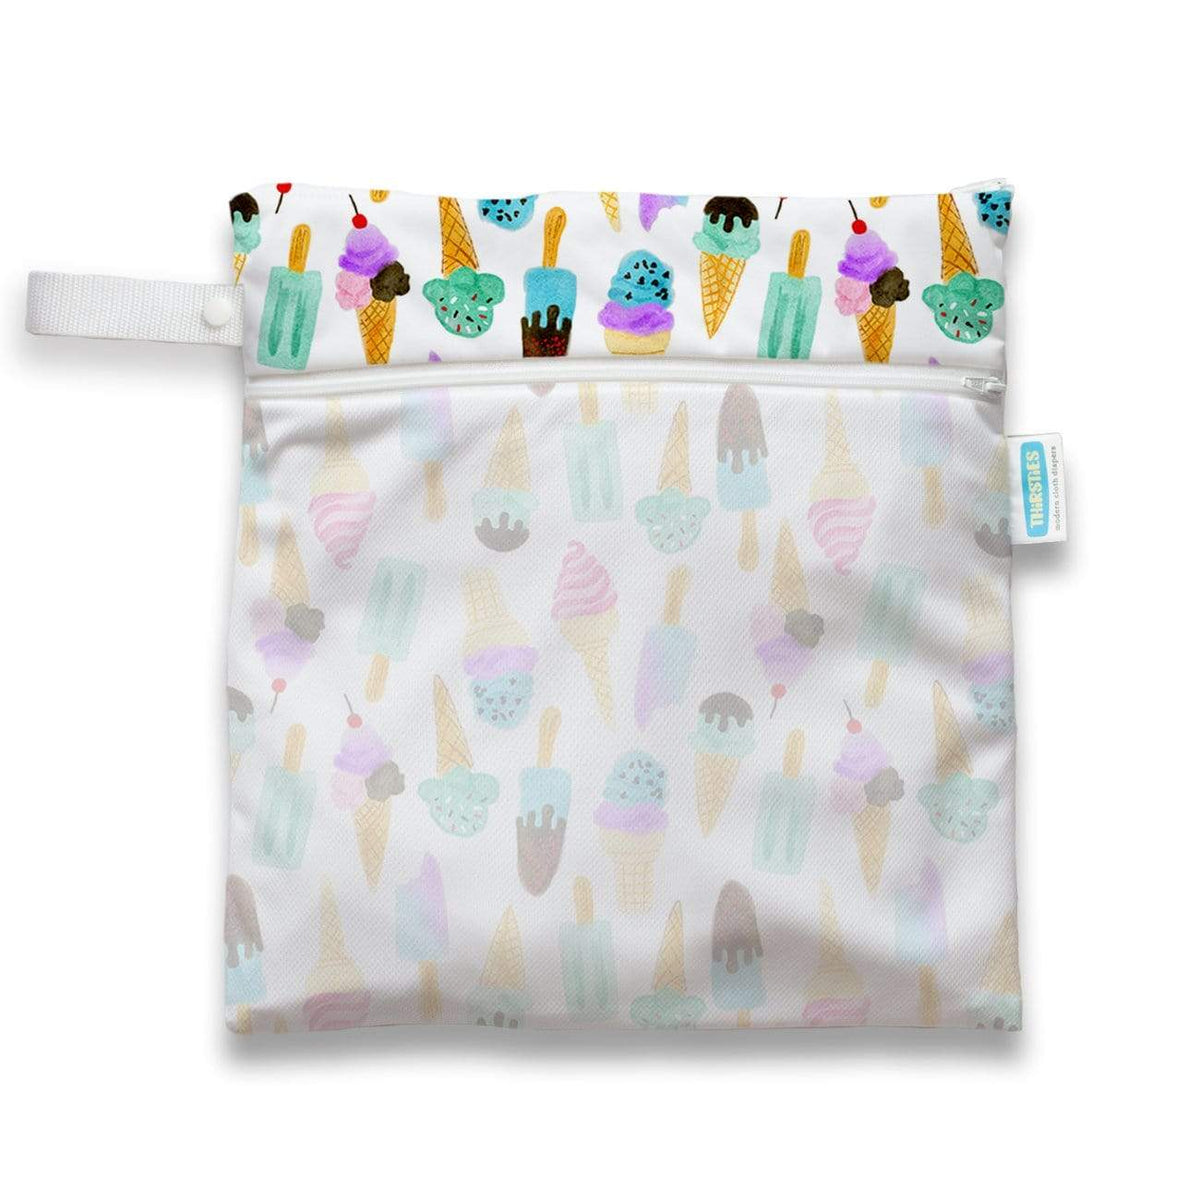 Thirsties Wet Bag - We All Scream